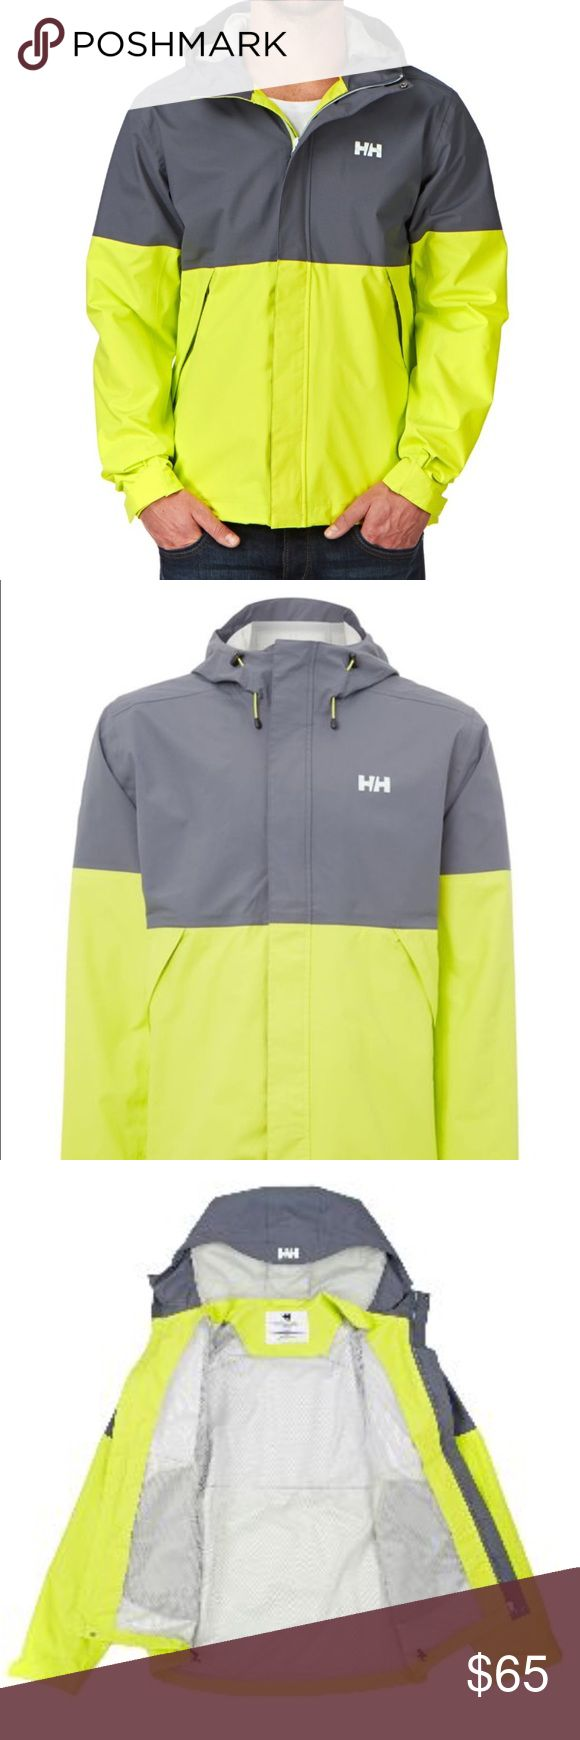 Helly Hansen Fremont Rain Jacket Helly Hansen Fremont rain jacket in grey and neon yellow. Waterproof, breathable and wind proof with fully sealed seams and Helly Tech Protection. So many features make it a great all-weather jacket for any activity. Anti-chafe chin guard, bottom hem cinch cord, adjustable cuffs, zipped hand pockets, one hand hood adjustments, fixed hood, front storm flap front zipper, quickly dry lining, durable water repellent treatment, and 2 ply fabric construction. Worn…